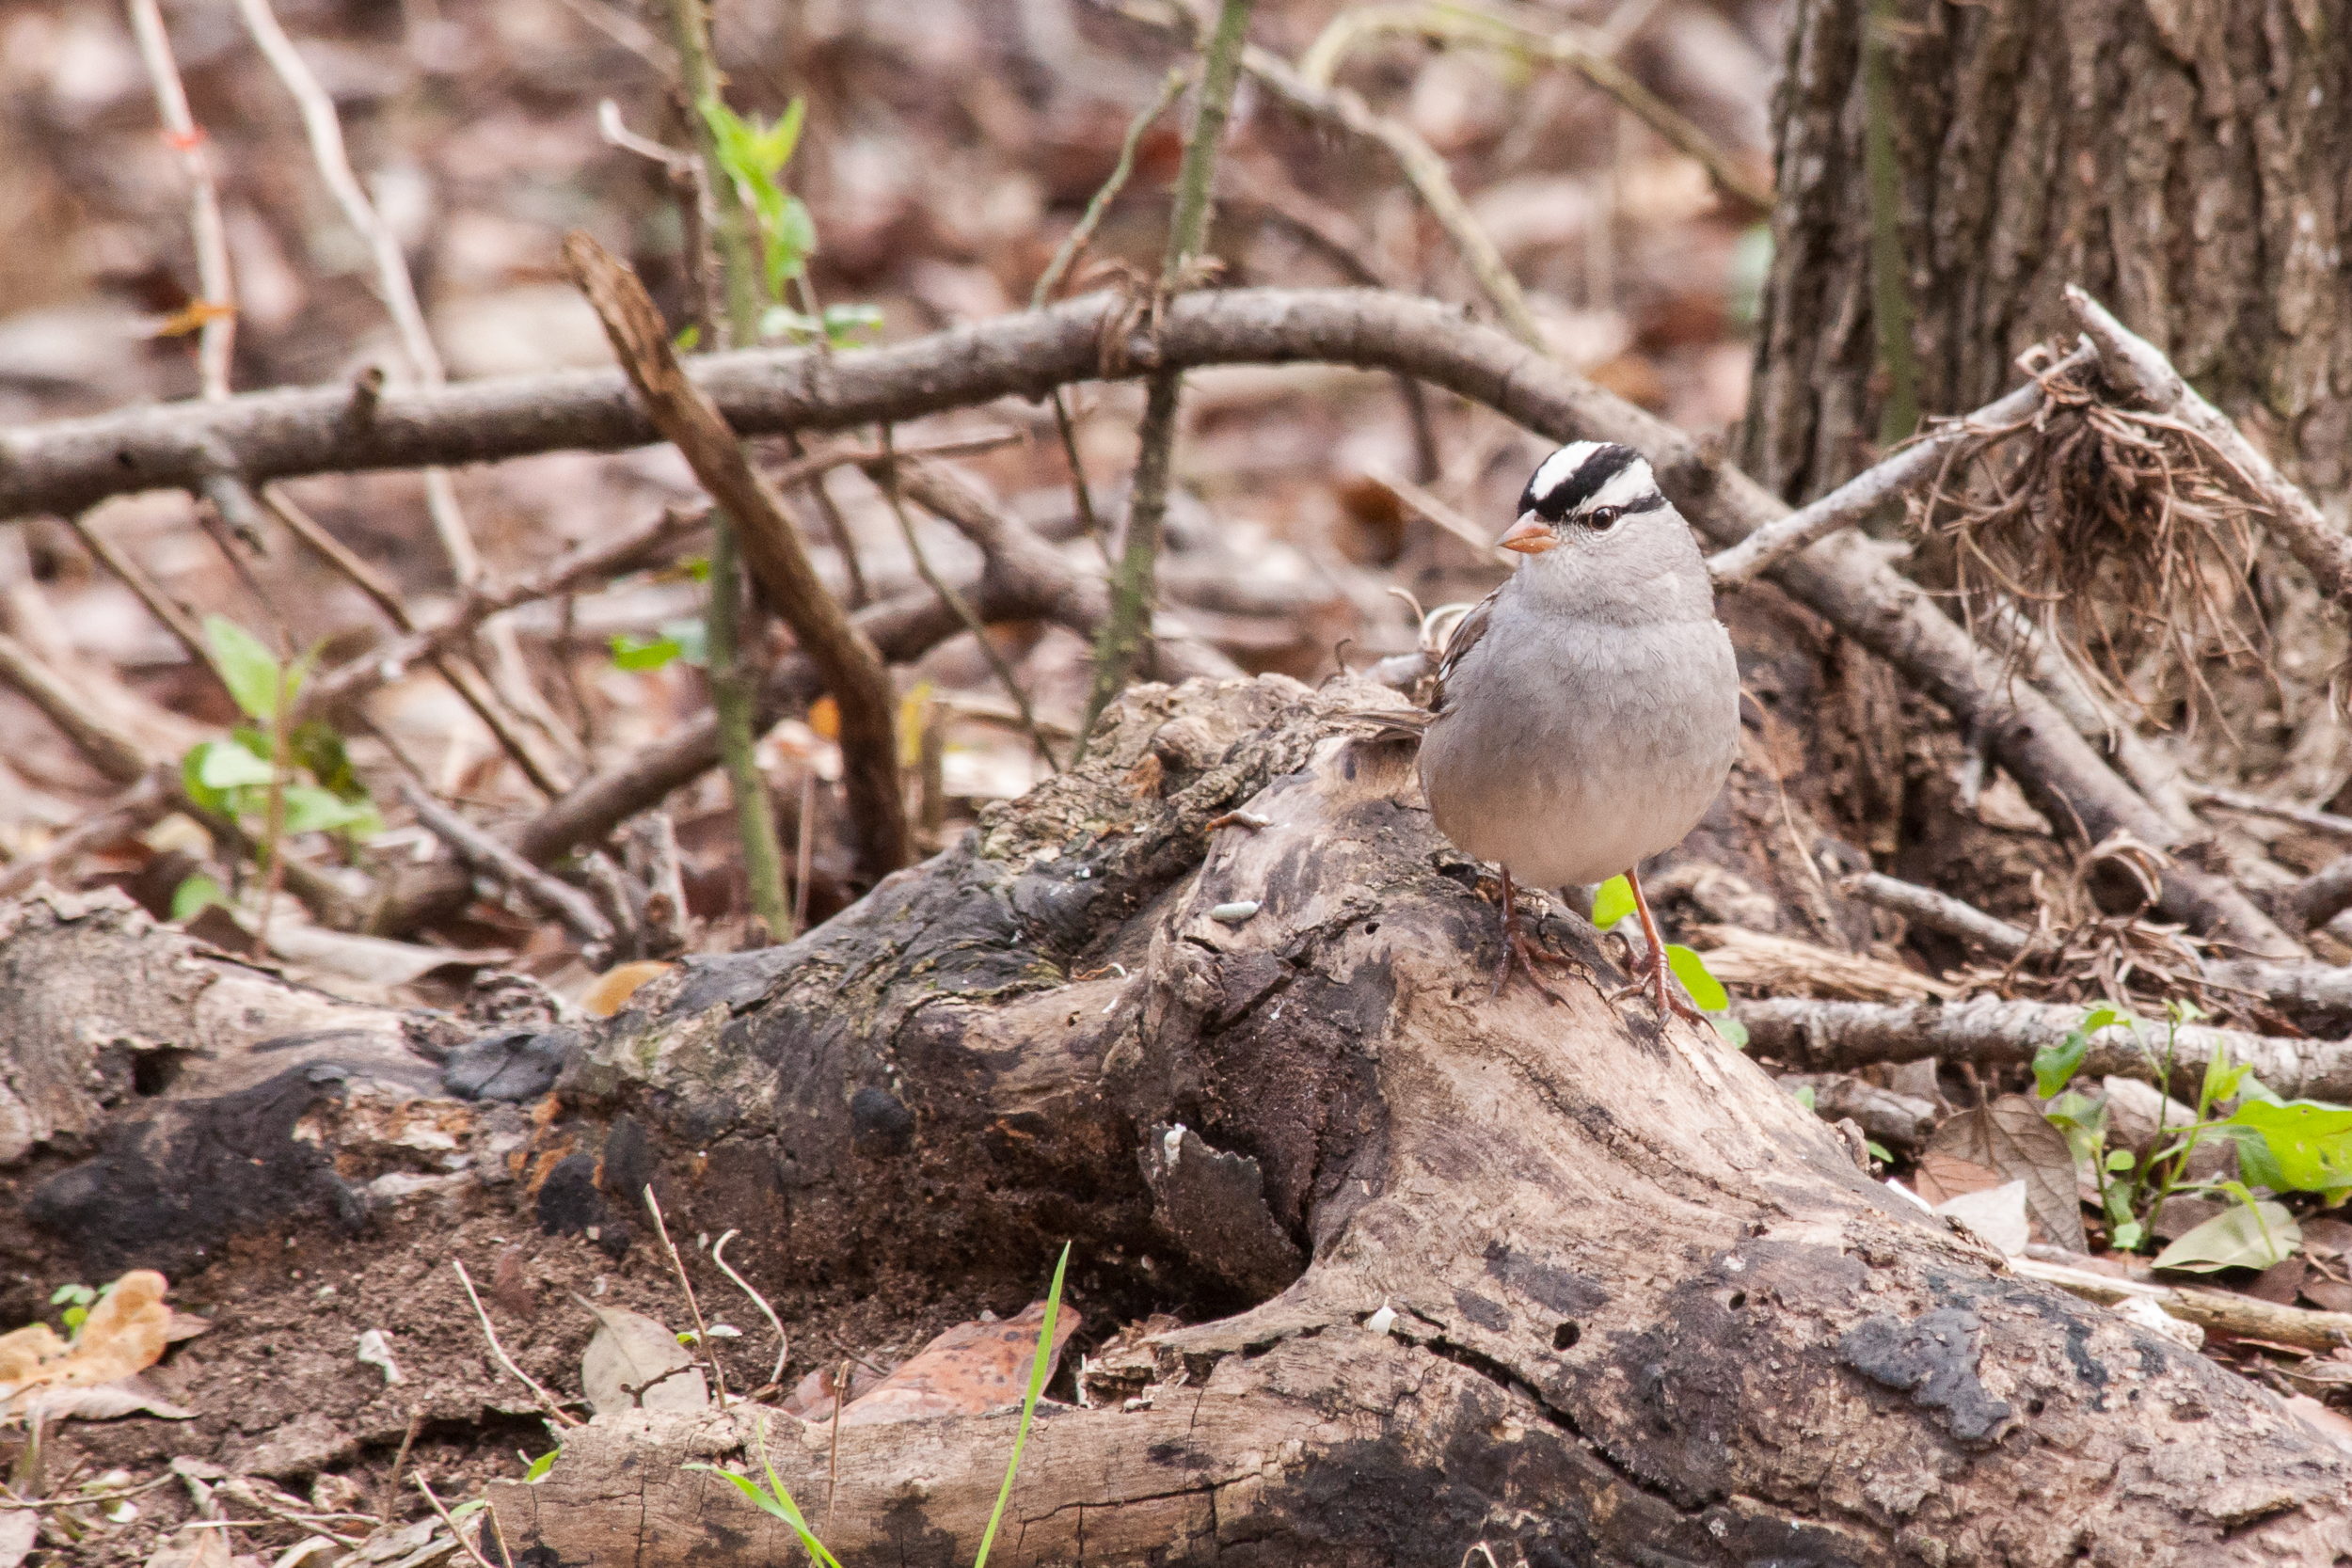 Species: White-crowned Sparrow Photo Credit: Alyssia Church Date: January 2017 Location: Warbler Woods Bird Sanctuary